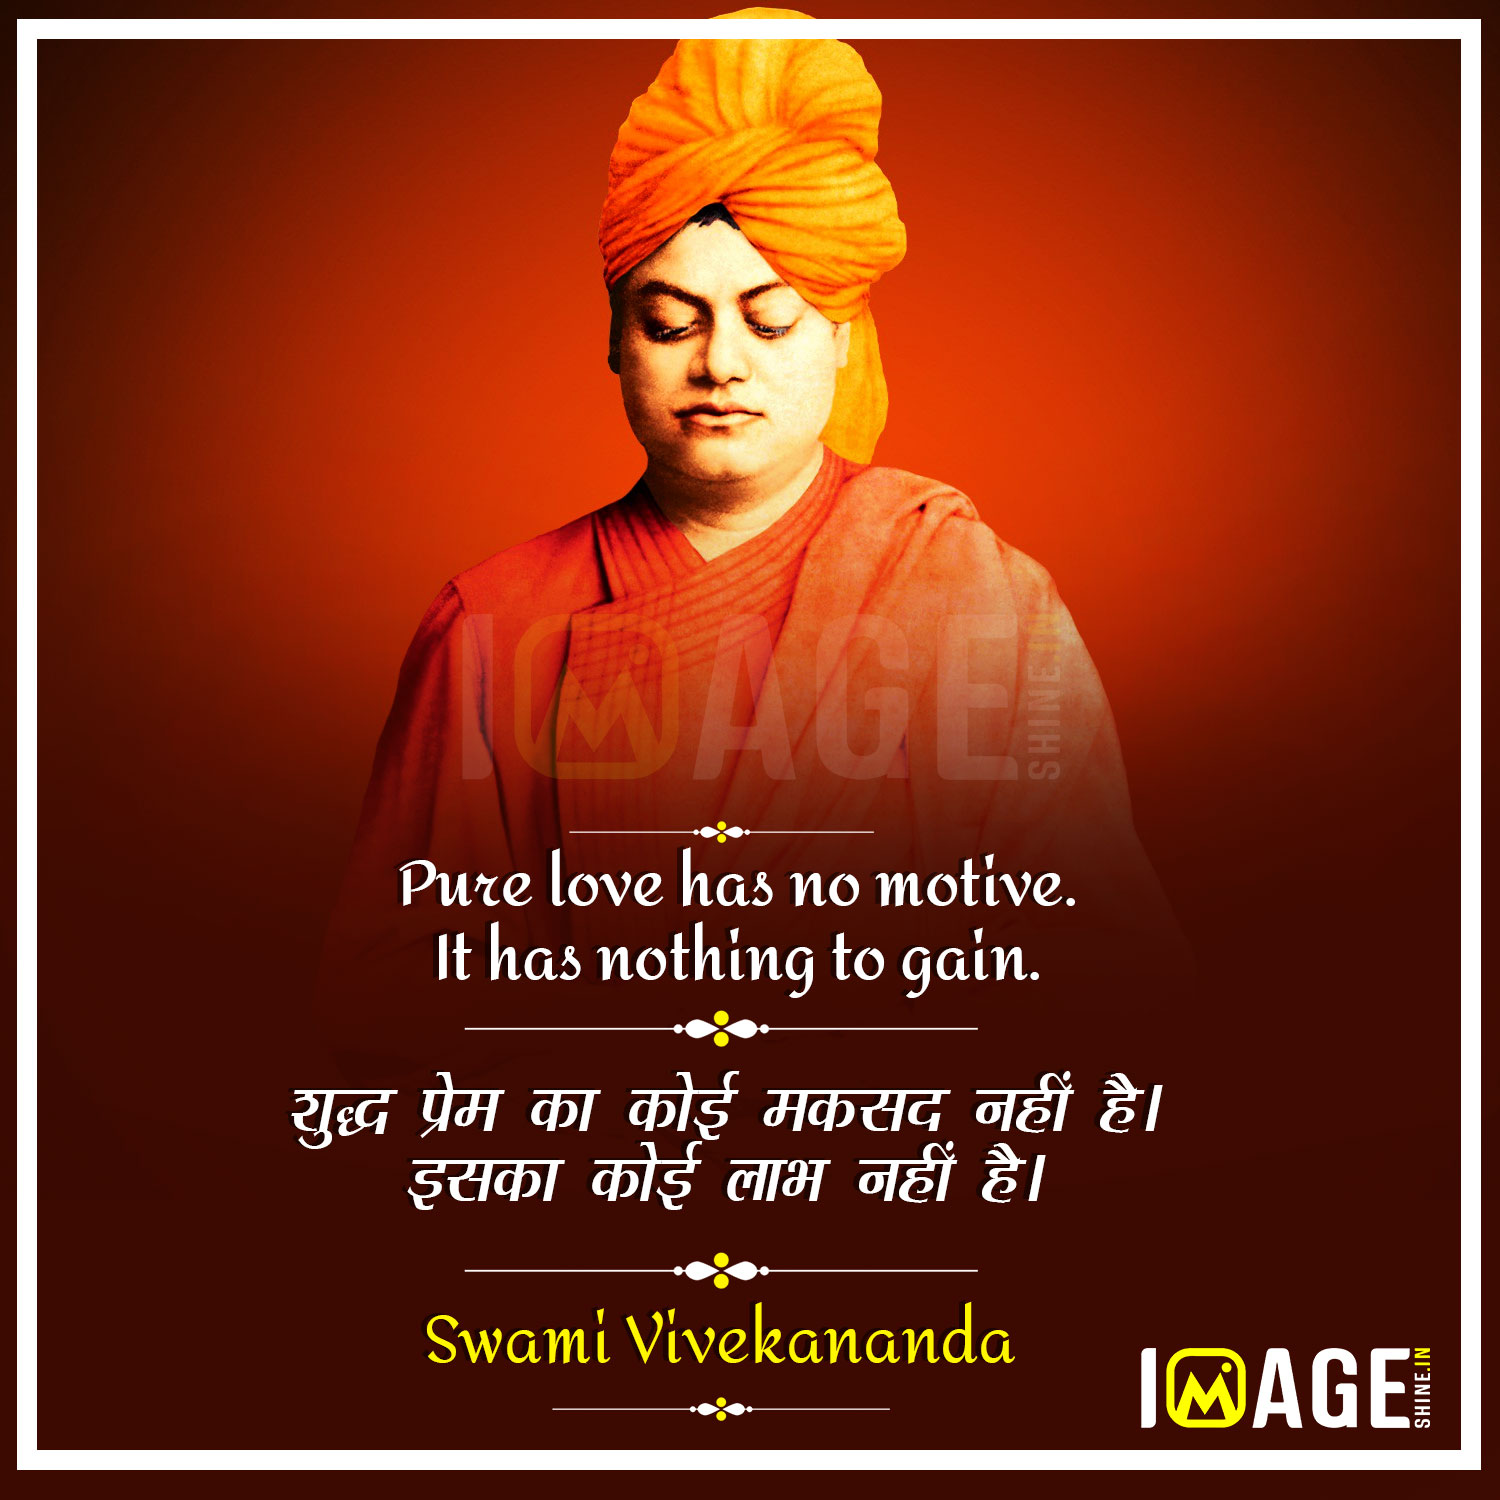 vivekananda quote in hindi